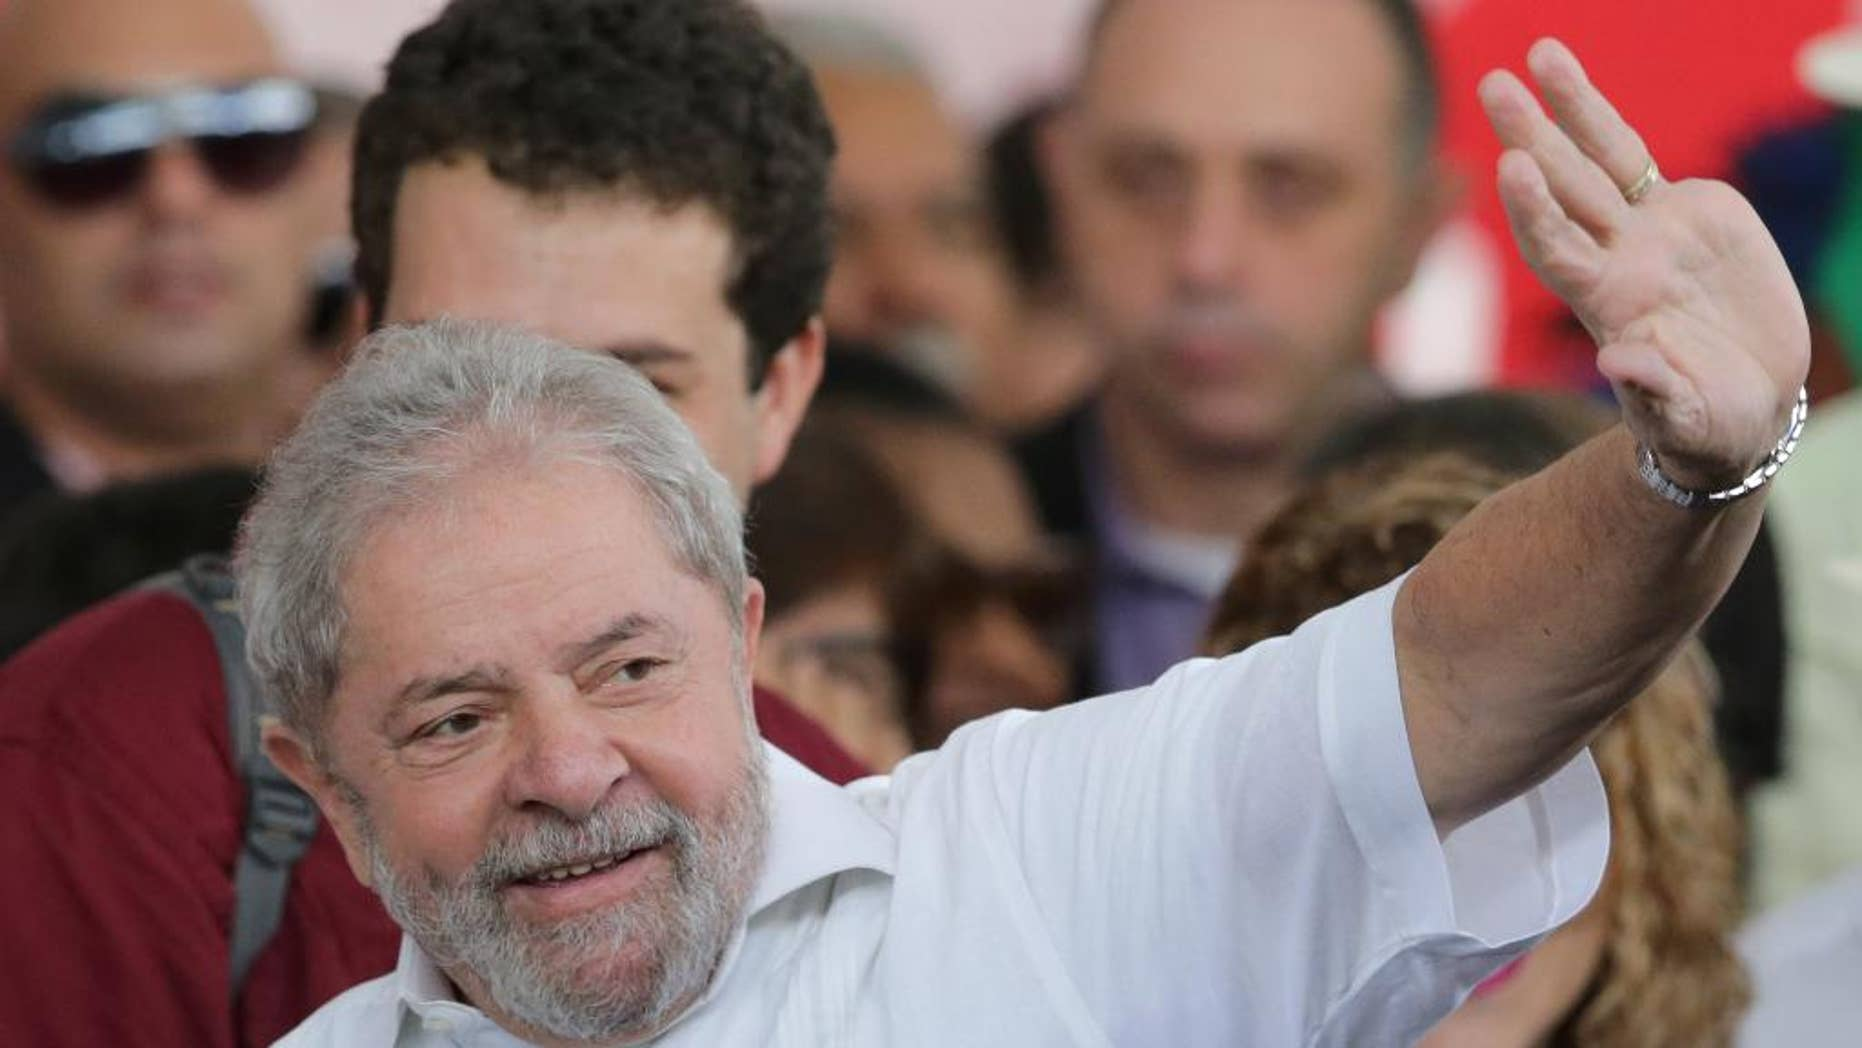 Brazil's former President Luiz Inacio Lula da Silva gestures to the crowd while arriving to a rally of Social Movements for Democracy, in a camp set up by supporters of President Dilma Rousseff in Brasilia, Brazil, Saturday, April 16, 2016. The lower chamber of Brazil's Congress on Friday began a debate on whether to impeach Rousseff, a question that underscores deep polarization in Latin America's largest country and most powerful economy. The crucial vote is slated for Sunday. (AP Photo/Eraldo Peres)